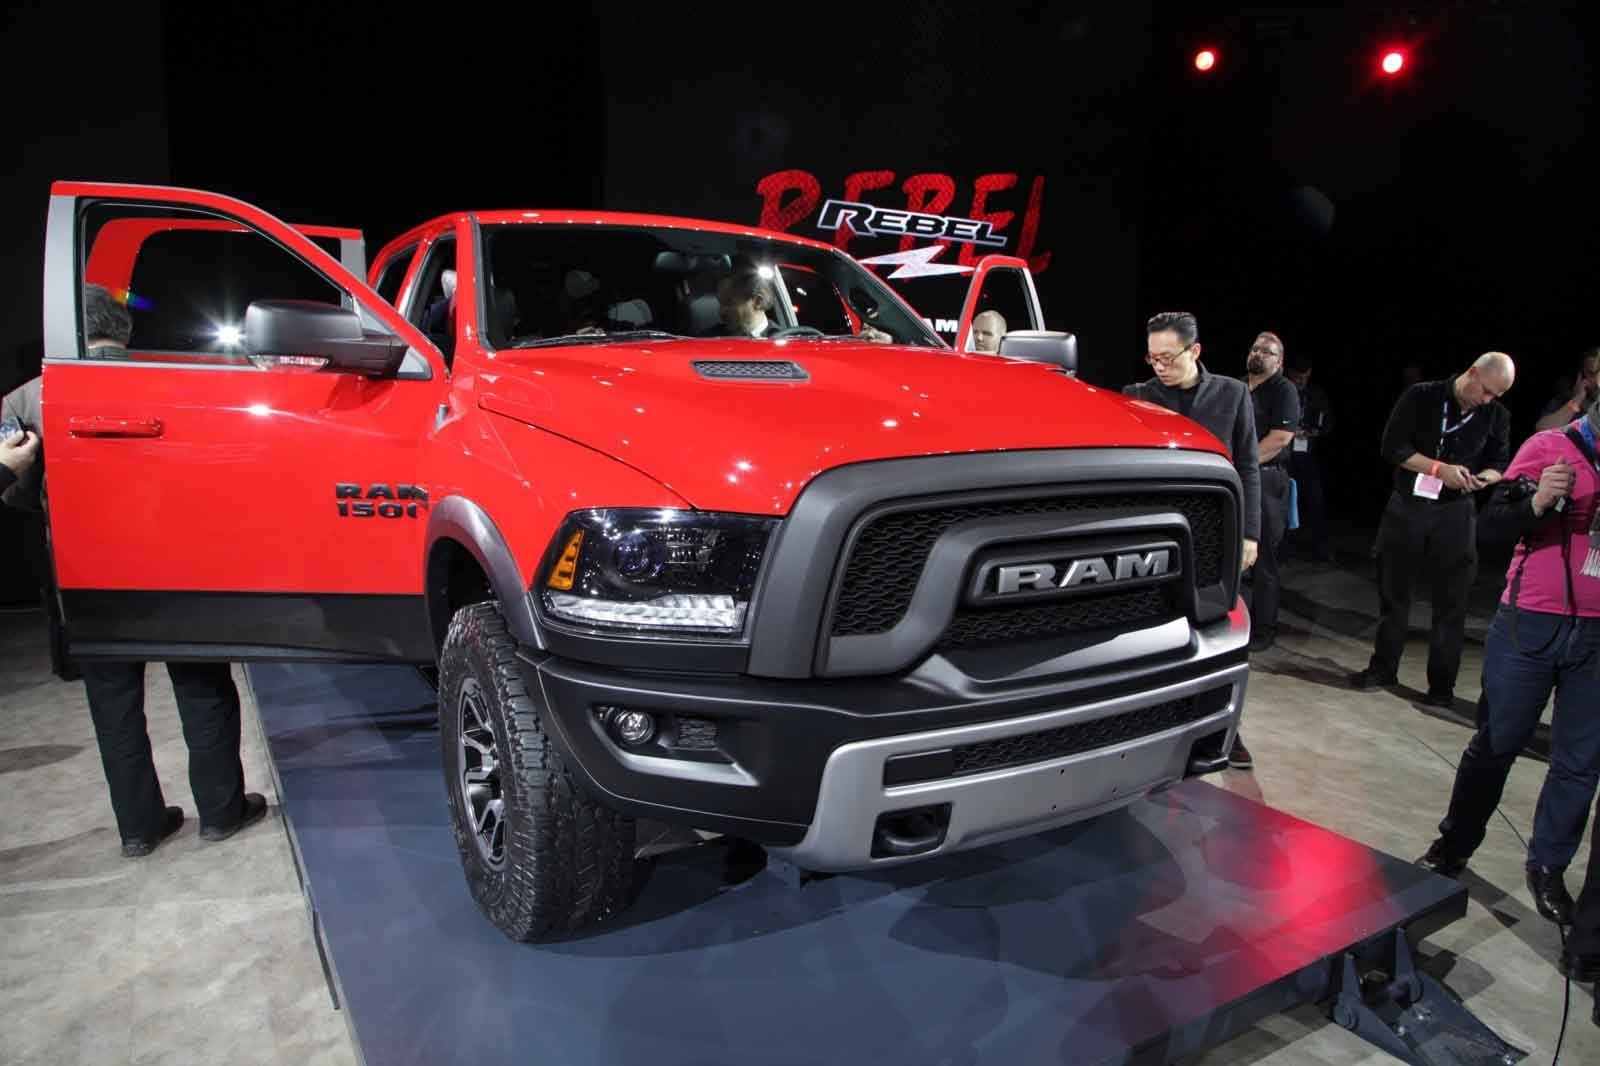 2015 ram 1500 rebel picture 612858 truck review top speed. Black Bedroom Furniture Sets. Home Design Ideas